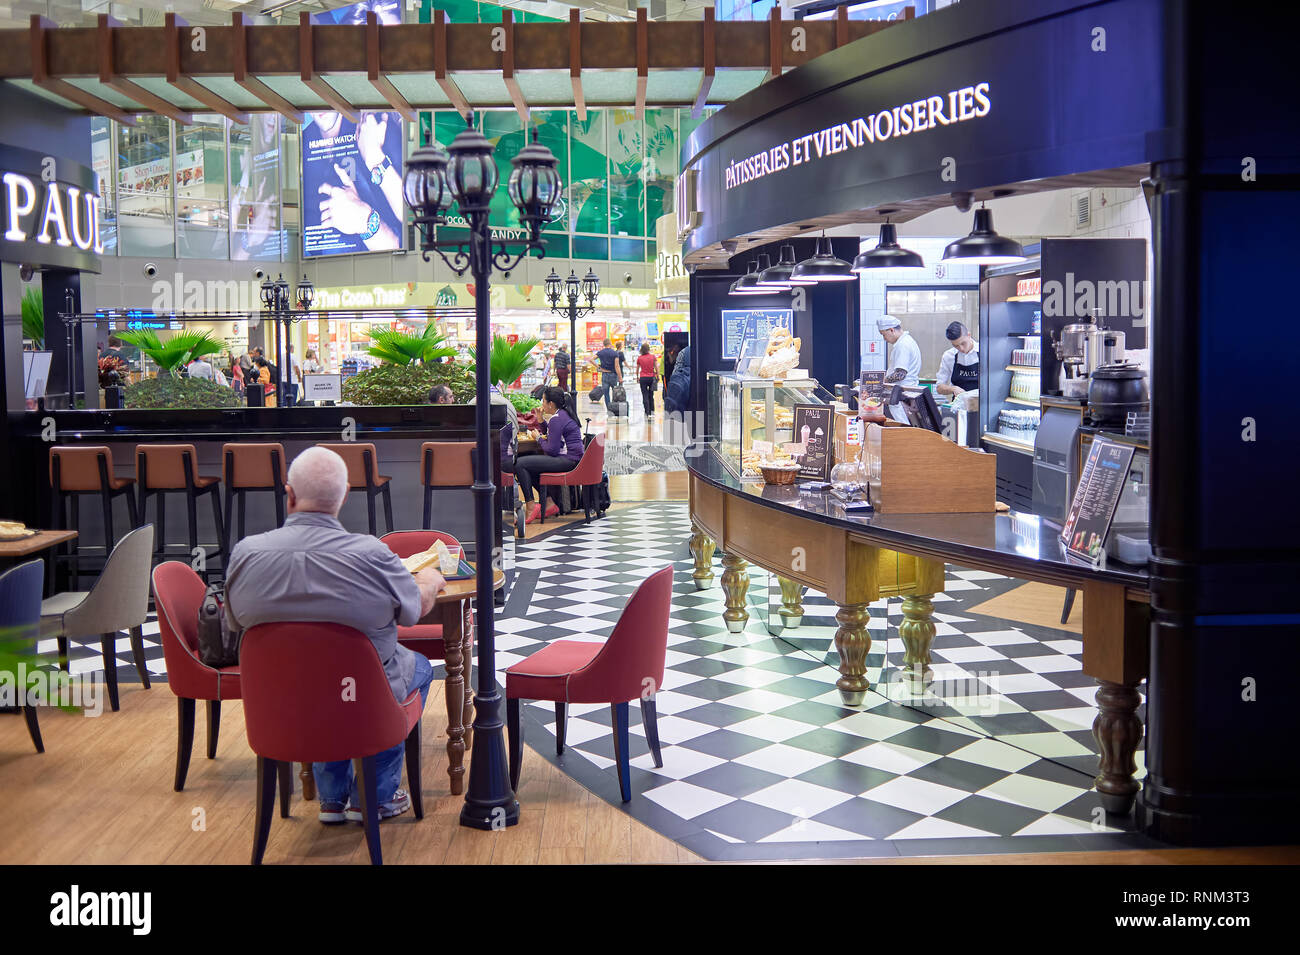 SINGAPORE - CIRCA NOVEMBER, 2015: Paul Singapore Changi Airport. Paul is a French chain of bakery/cafe restaurants - Stock Image